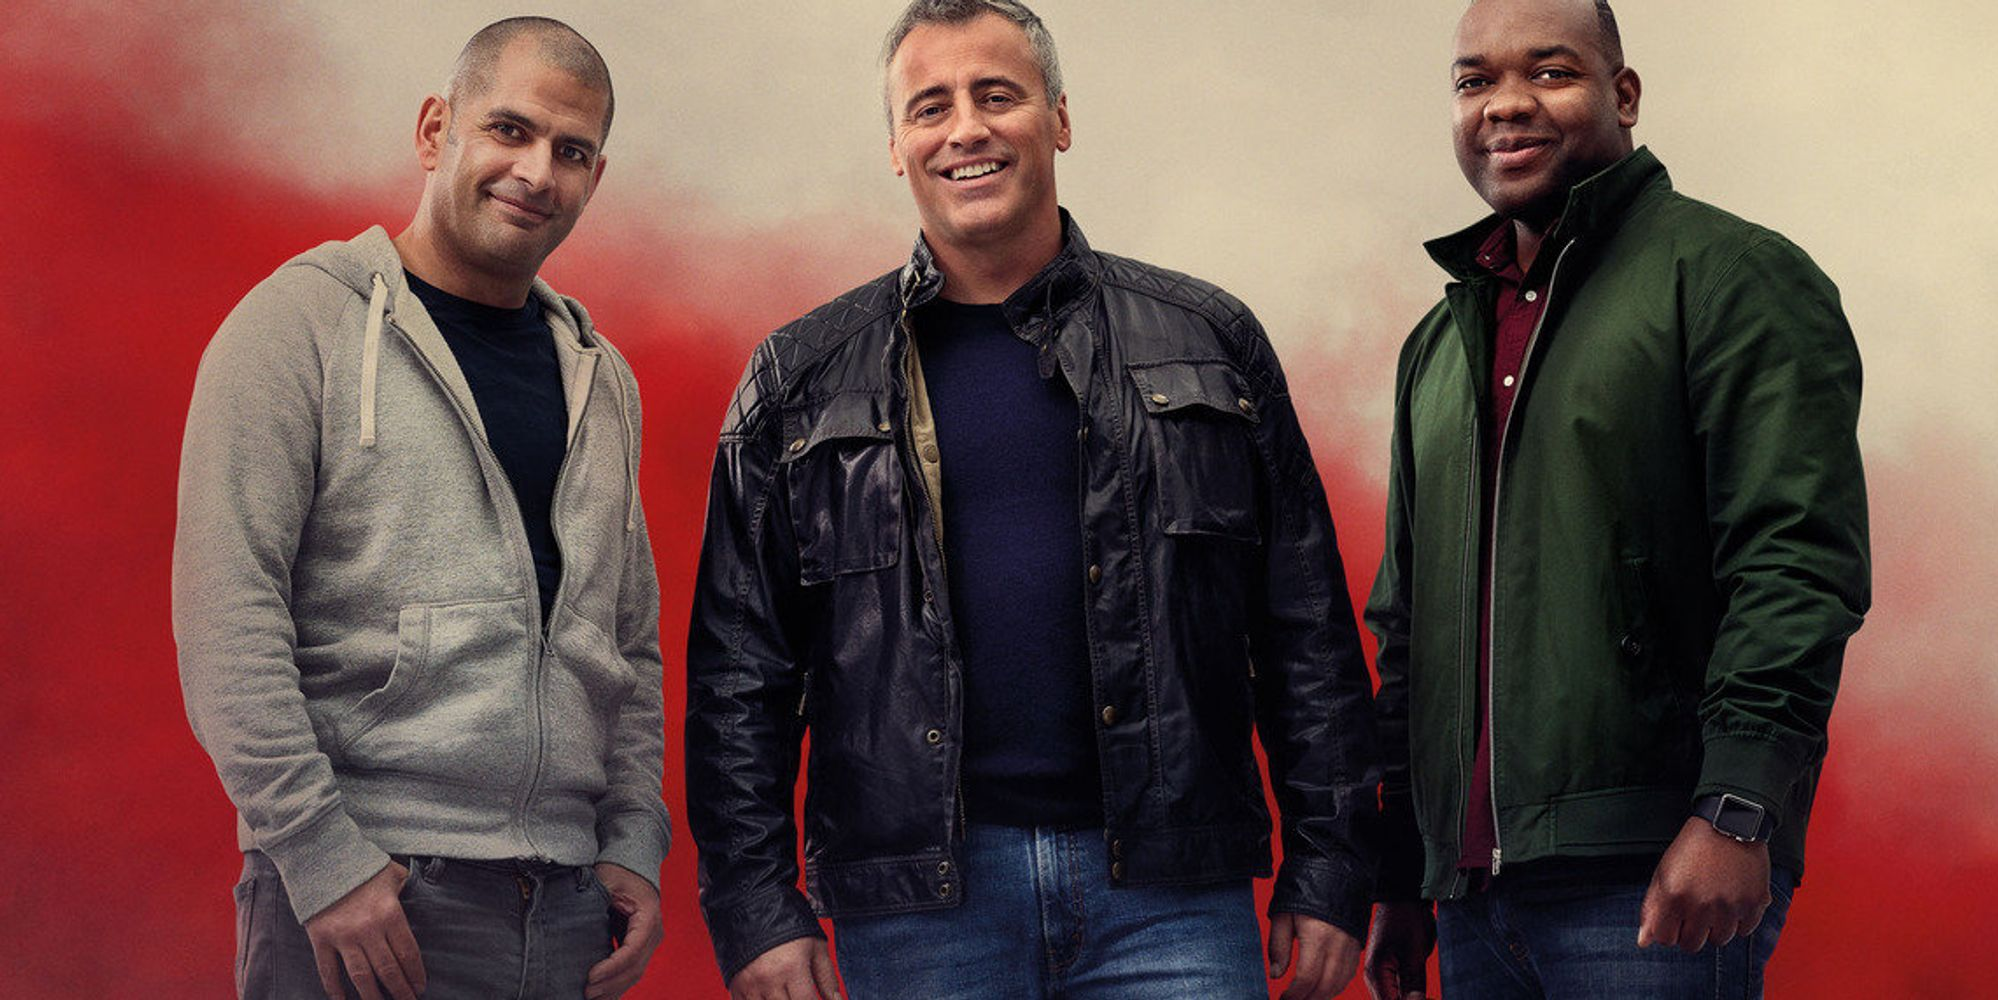 39 top gear 39 ratings 2017 series opens to less than three million viewers huffpost uk. Black Bedroom Furniture Sets. Home Design Ideas